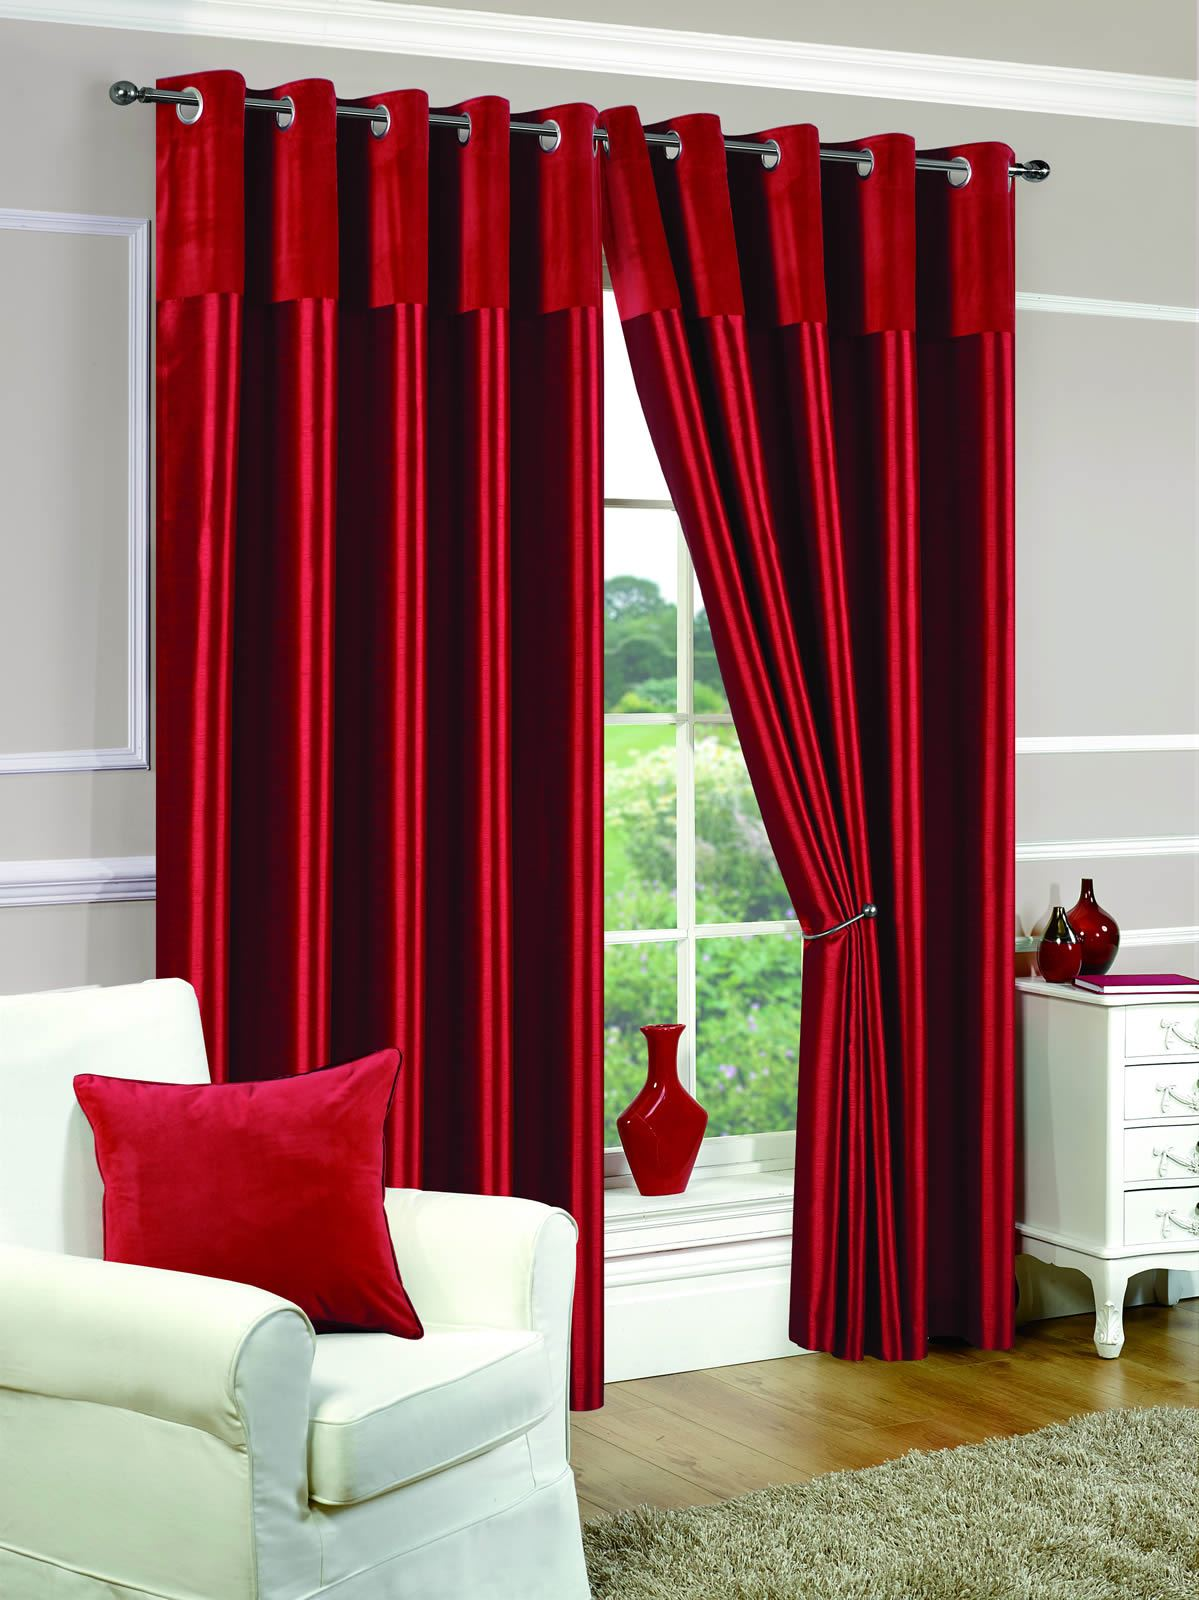 EYELET FULLY LINED READY MADE CURTAINS RING TOP